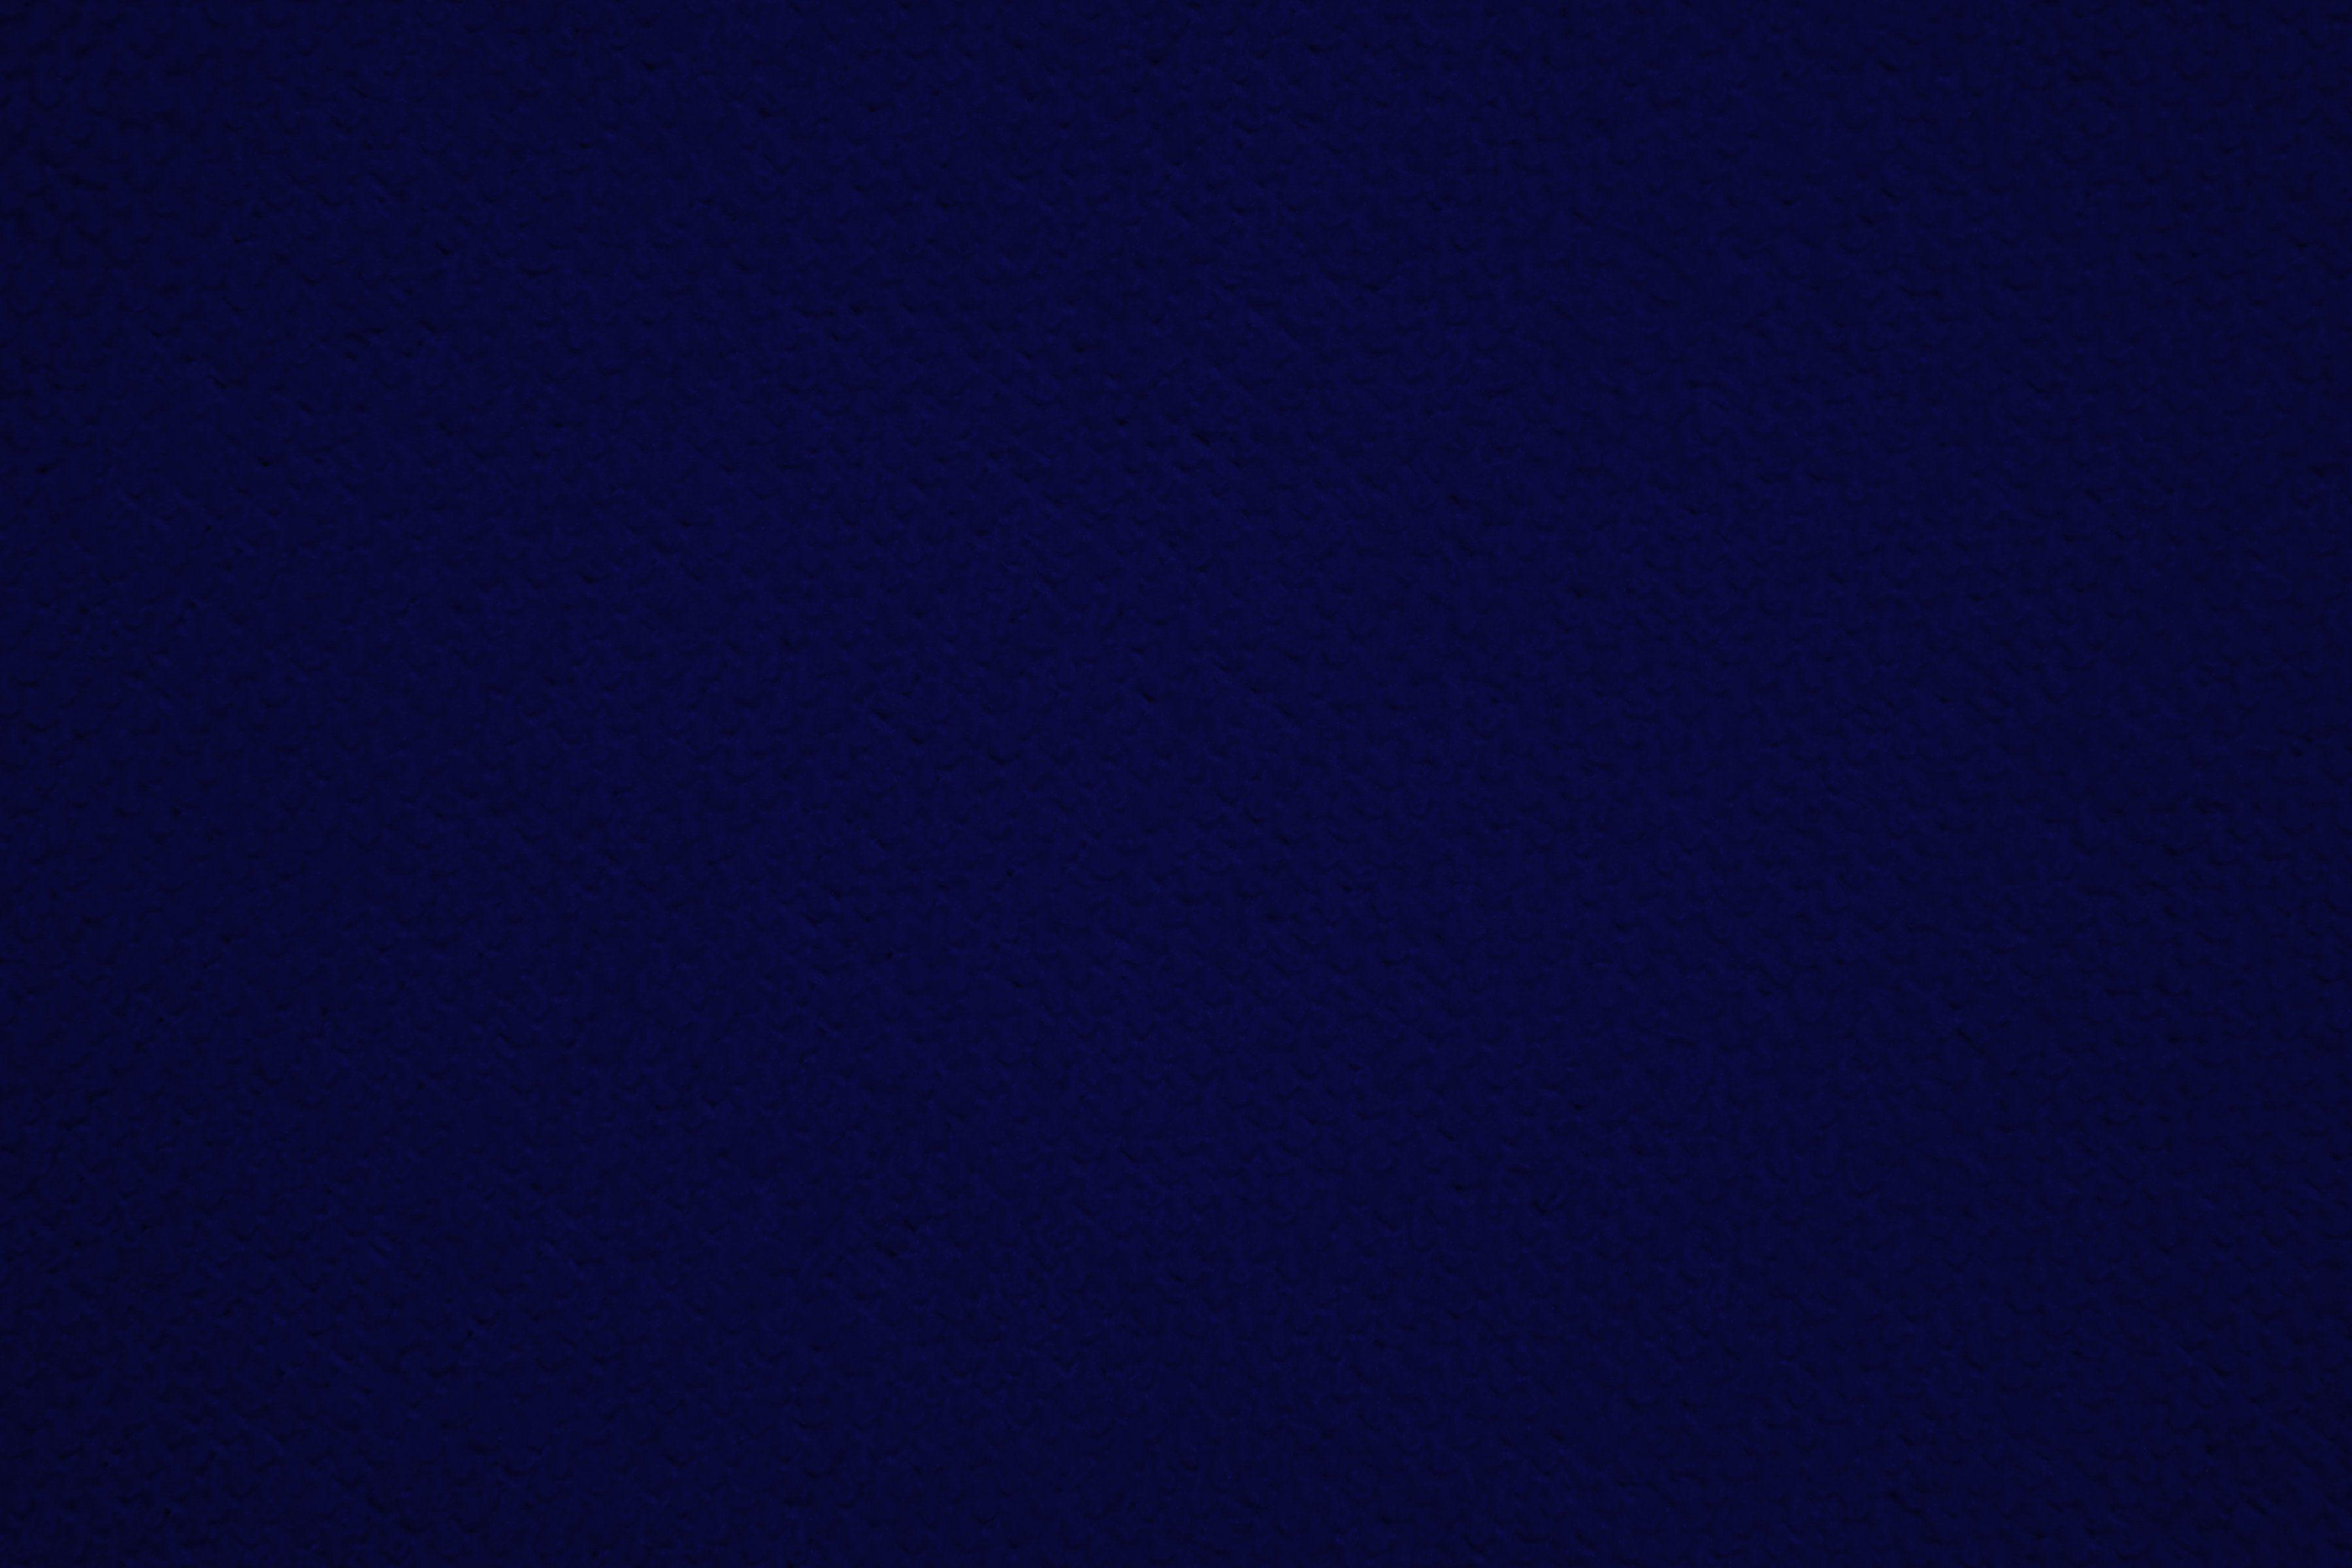 Dark blue backgrounds image wallpaper cave Navy purple color